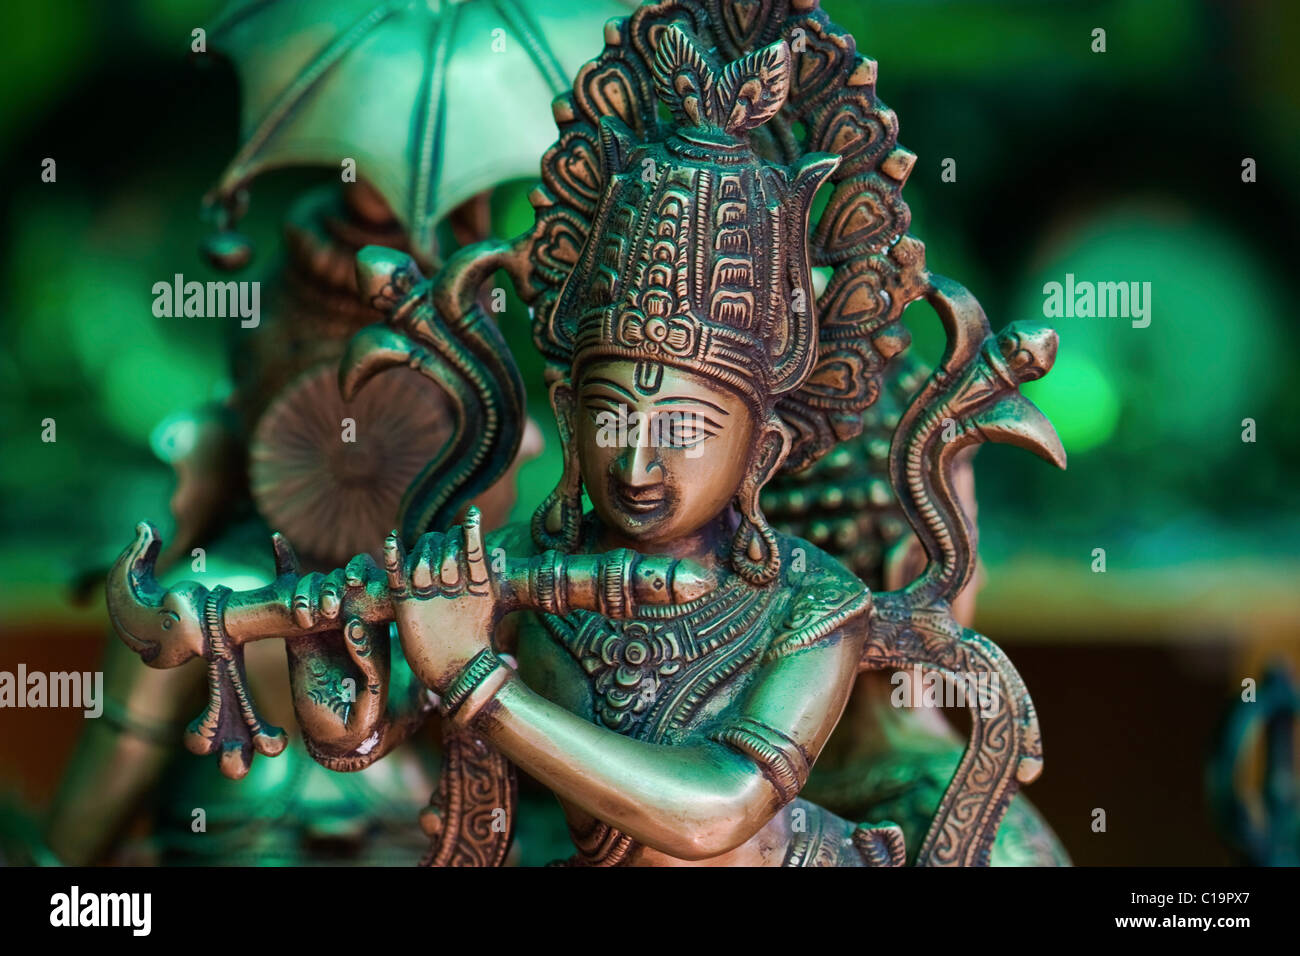 metallic statue of hindu god krishna playing the flute on shop display C19PX7